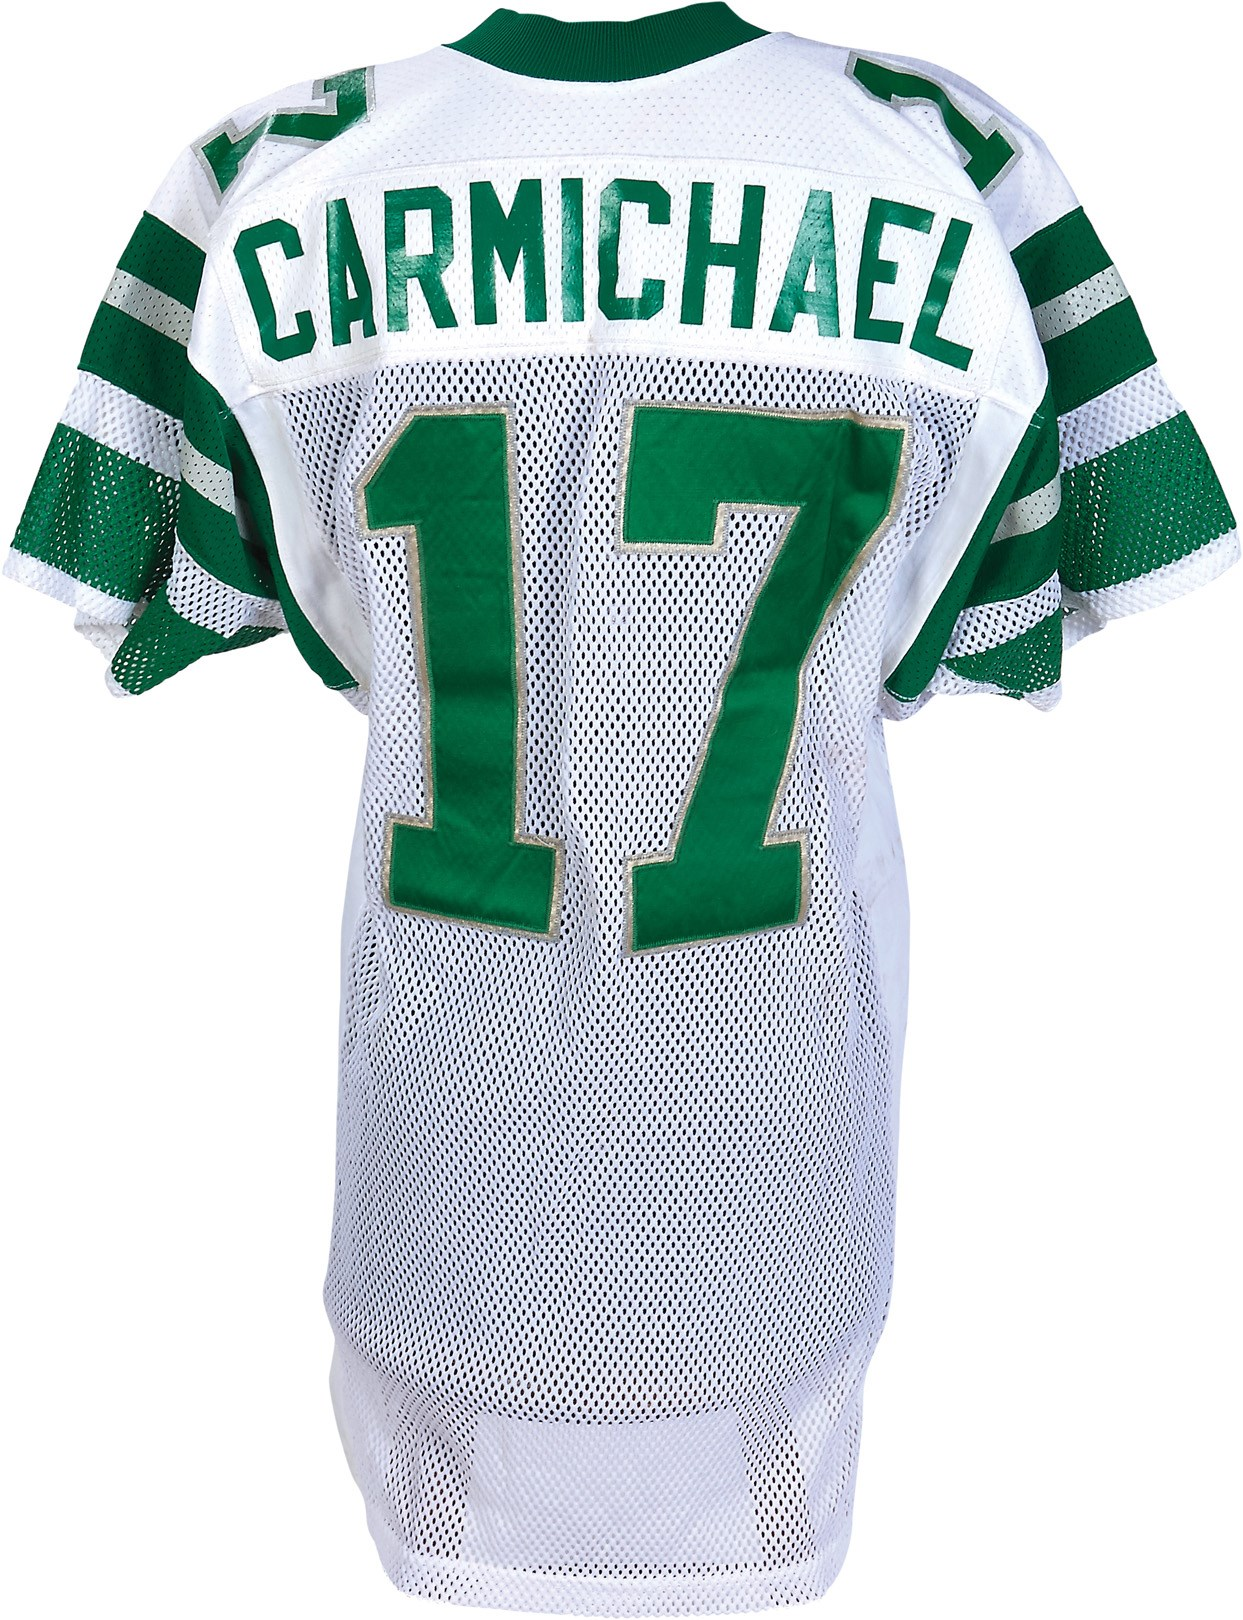 new product c6932 f5570 Mid-1970s Harold Carmichael Philadelphia Eagles Game Worn Jersey